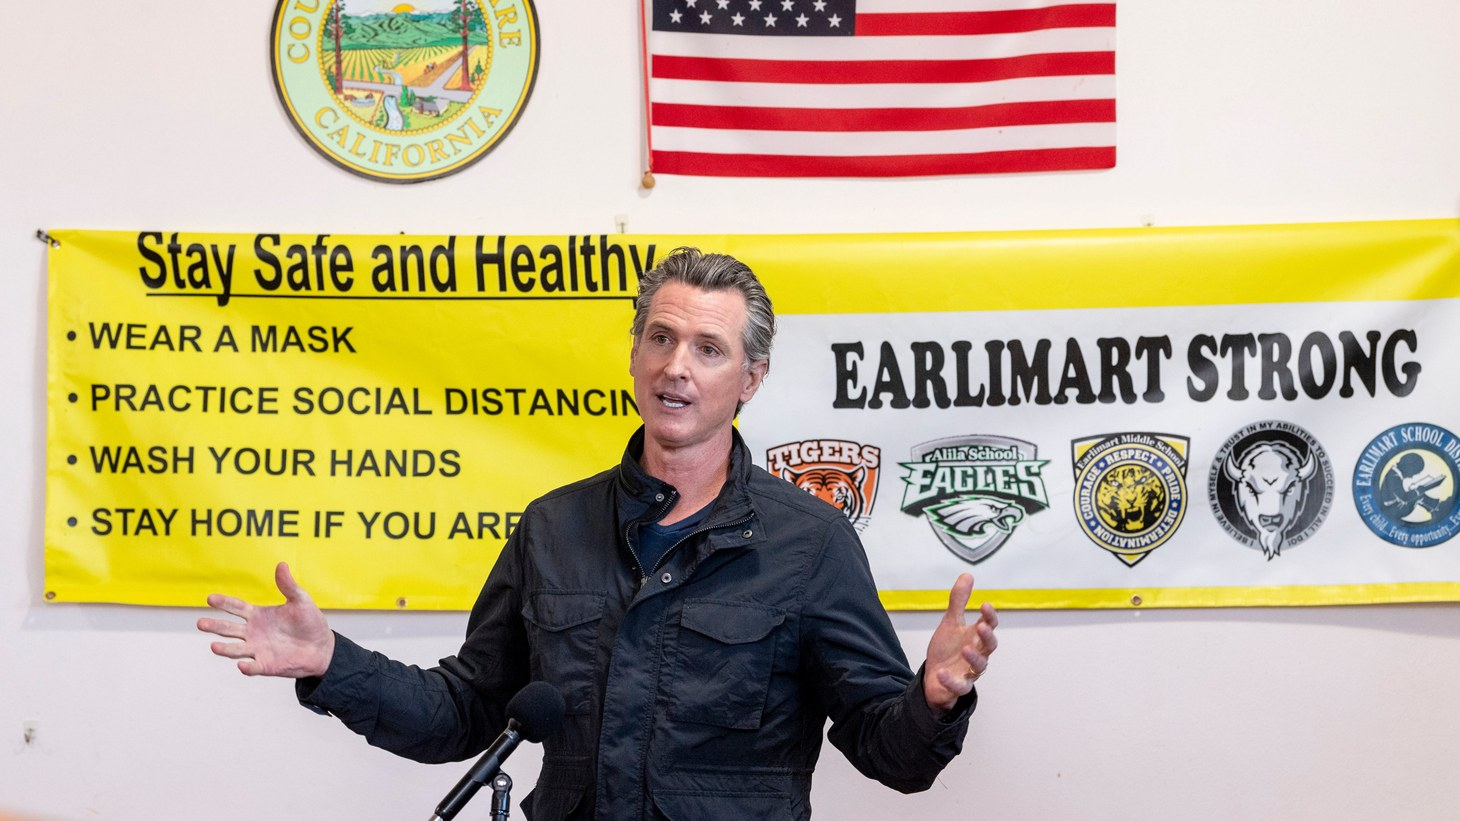 California Gov. Gavin Newsom discusses vaccine equity during his visit to Earlimart Veterans Memorial Building on Monday, March 8, 2021. Tulare County Board of Supervisors Chairwoman Amy Shuklian introduced the governor and repeated the need to provide vaccine protection for farmworkers.